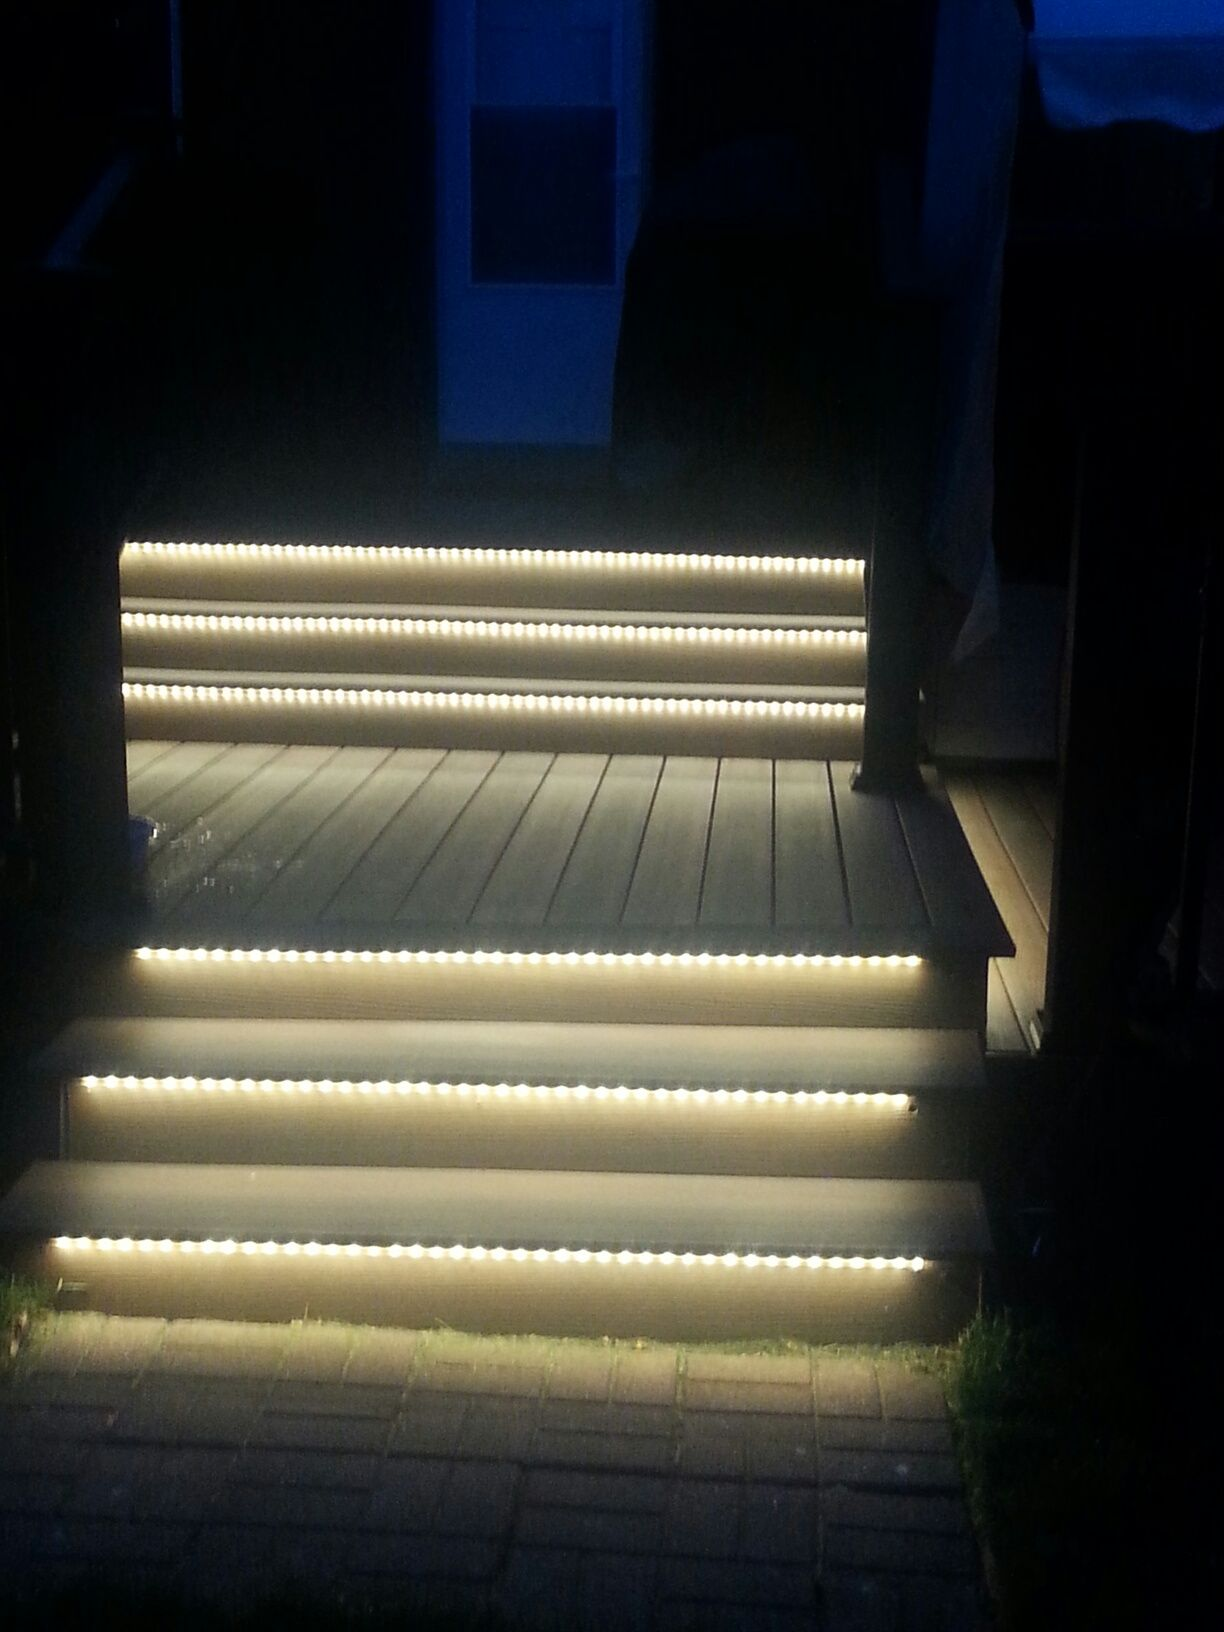 Outdoor led lighting under stairs to light up the night toe kick outdoor led lighting under stairs to light up the night warm white flexible strips were used to create this beautiful effect toe kick lights are easy to aloadofball Image collections